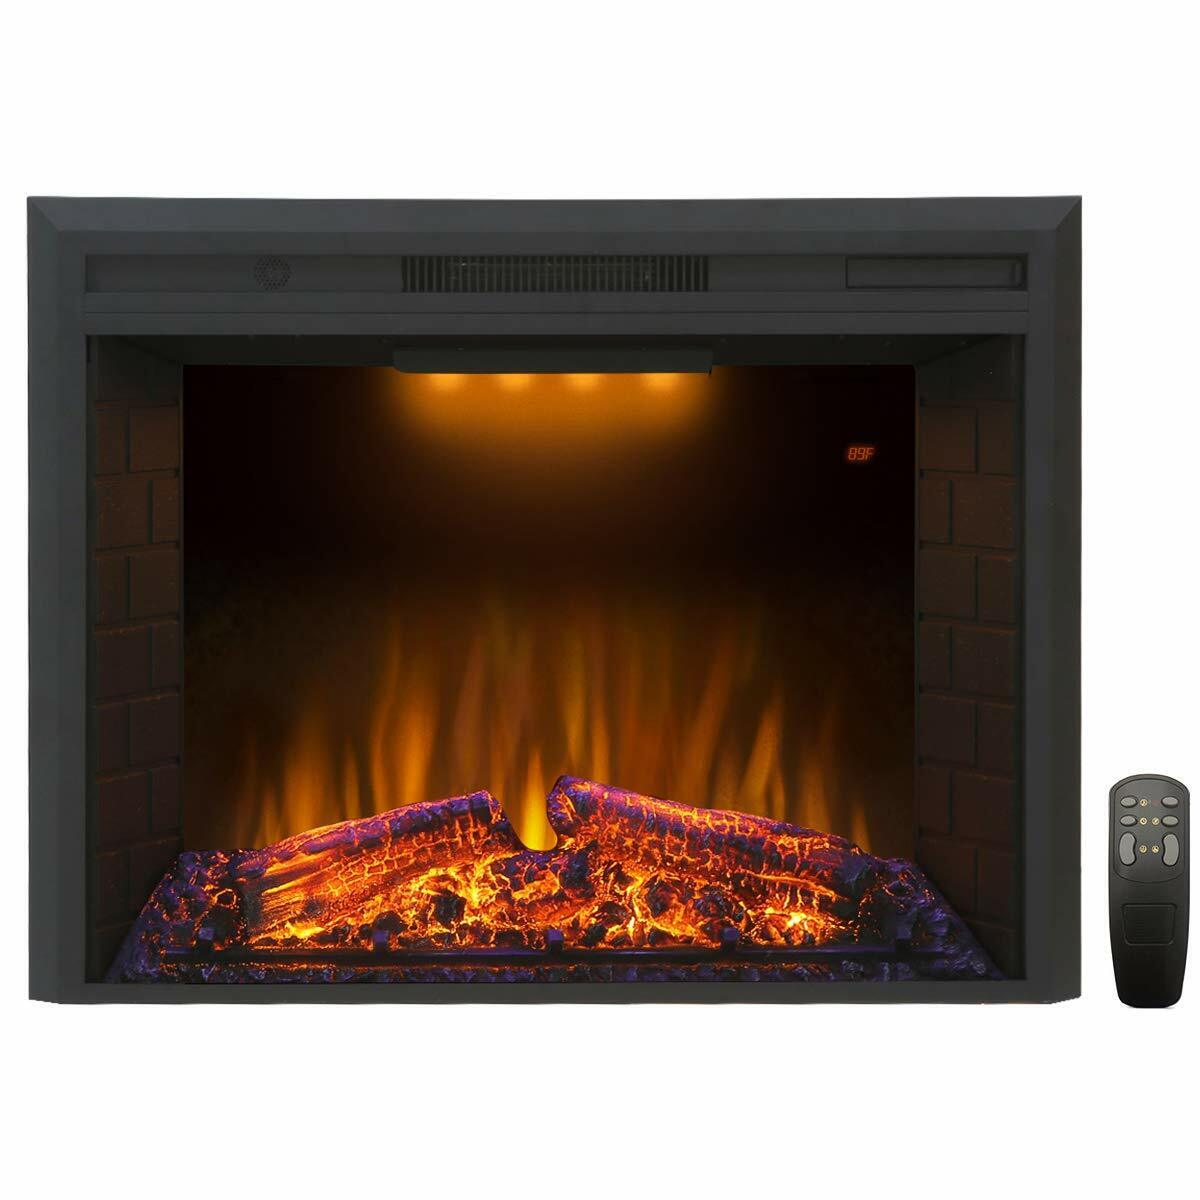 "Valuxhome Houselux 30"" Embedded Fireplace Electric Insert He"